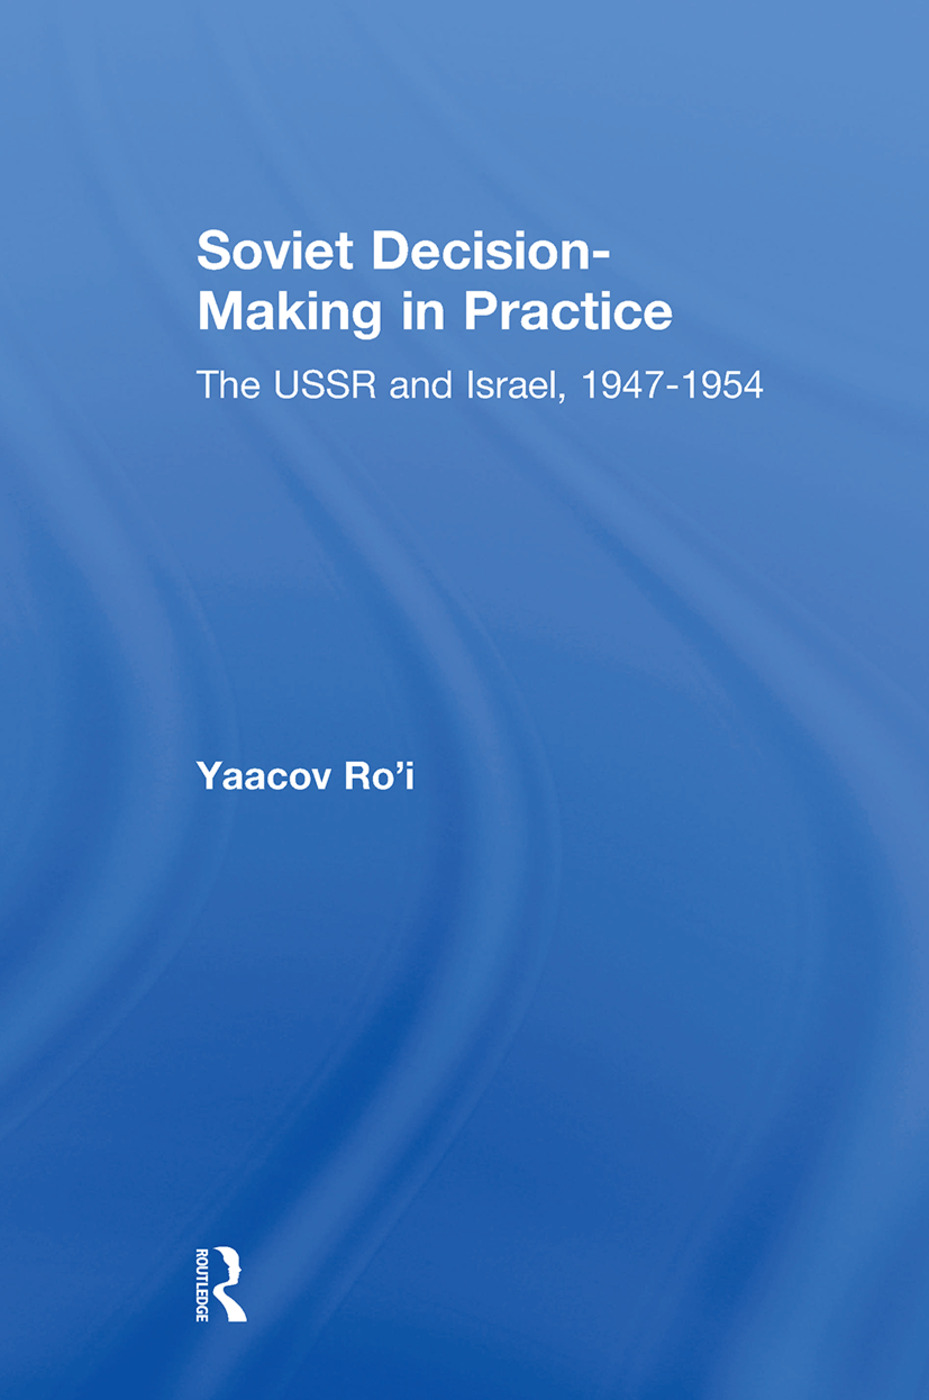 Soviet Decision-Making in Practice: The USSR and Israel, 1947-1954 book cover